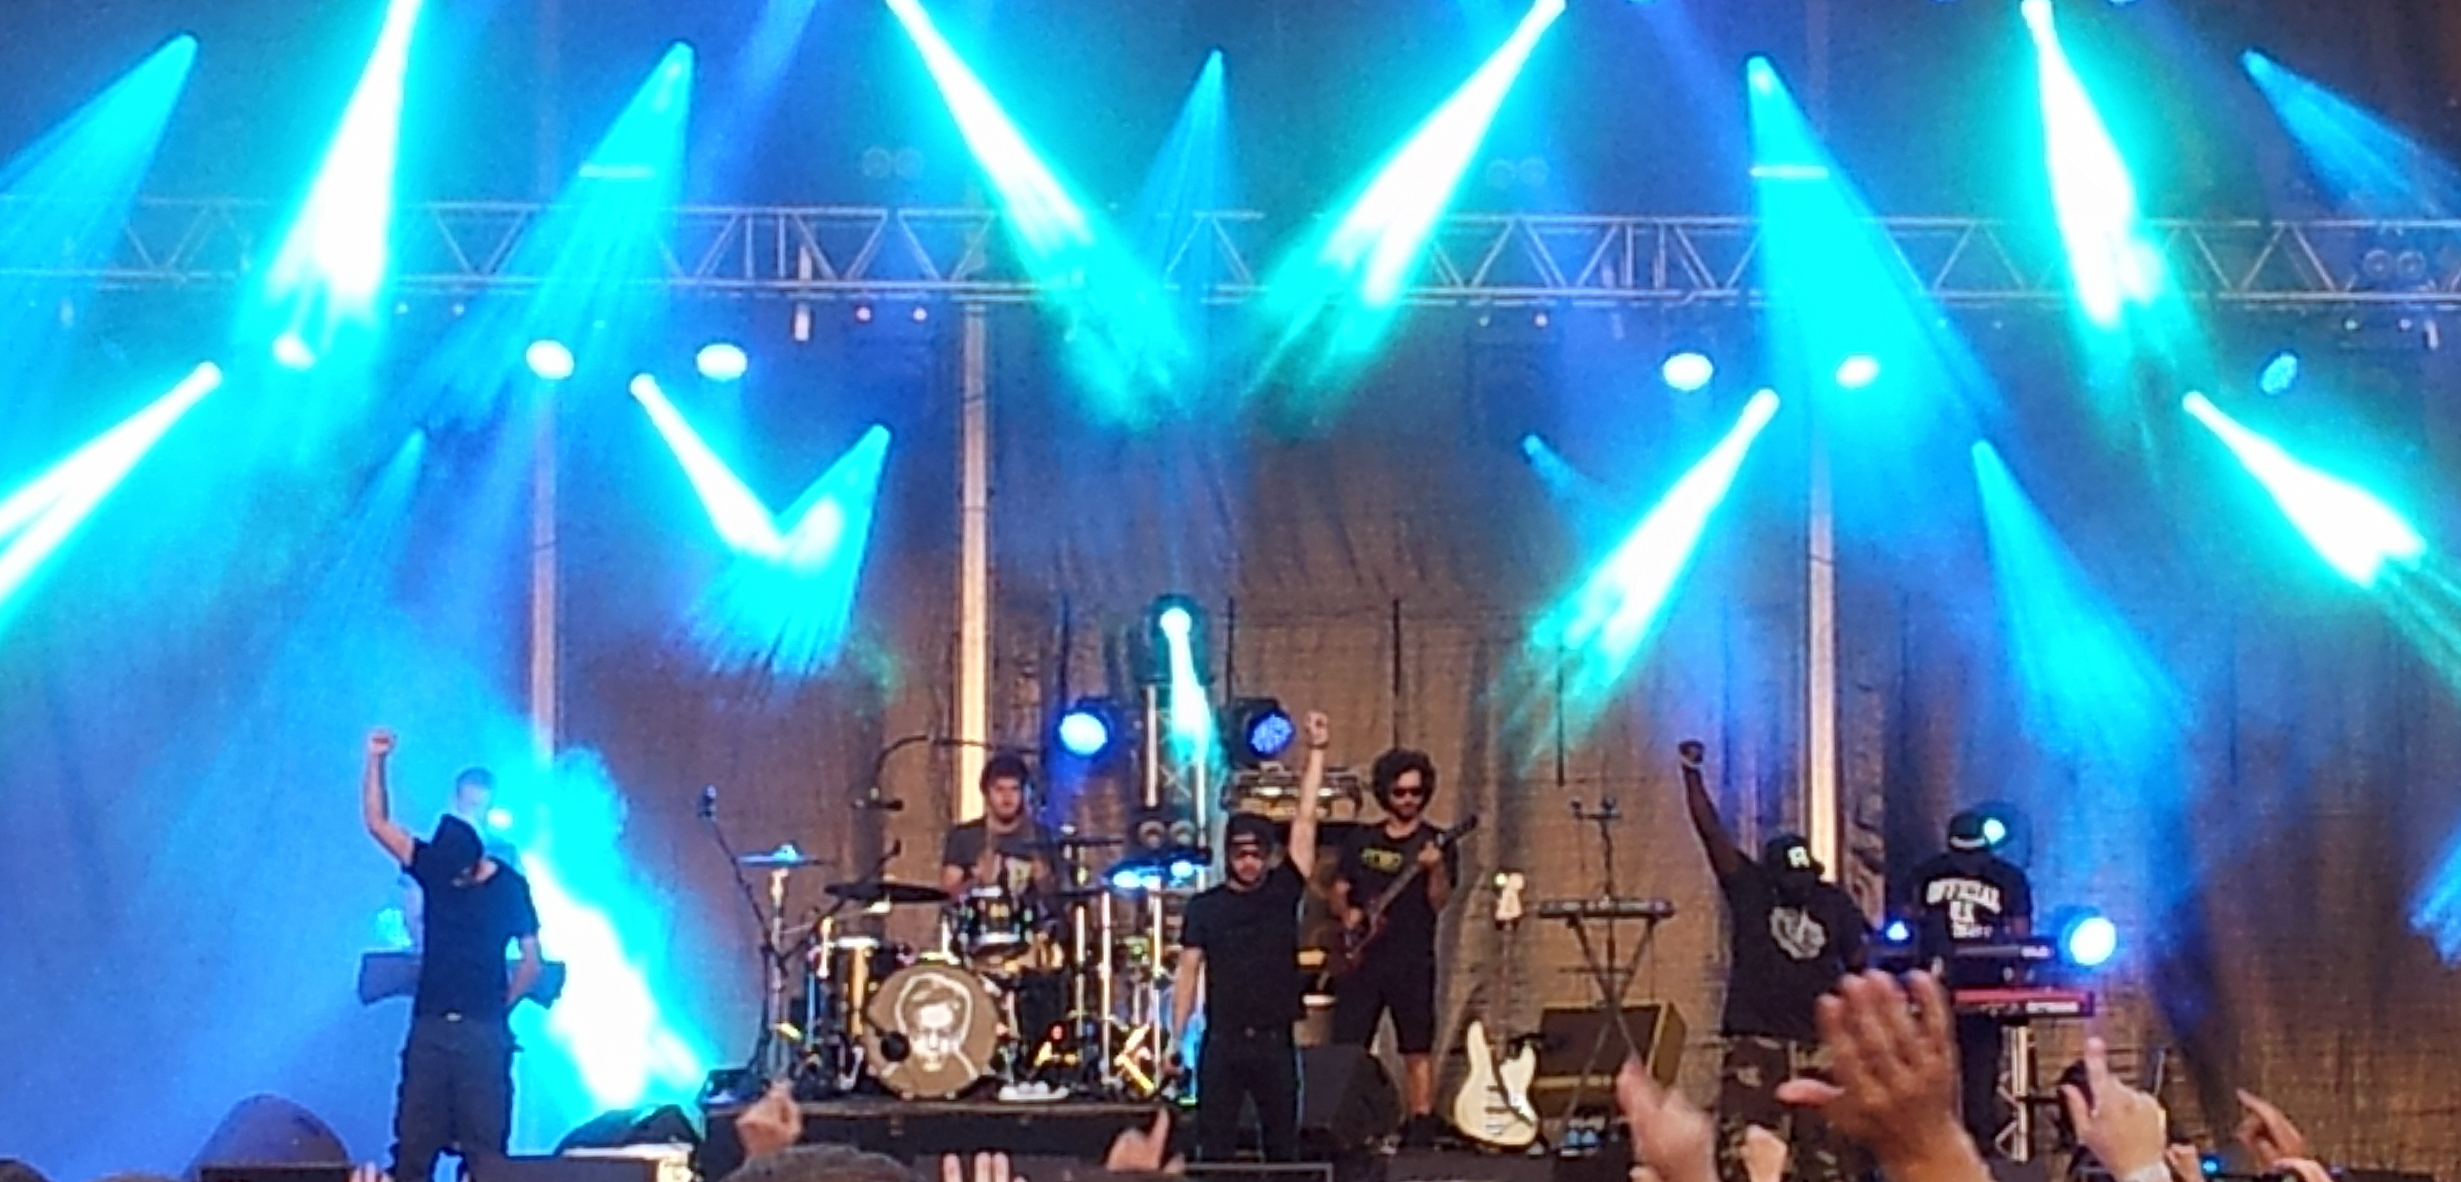 Orelsan (middle) performing at the Nuits Secrètes Festival at Aulnoye-Aymeries, France on 4 August 2013.